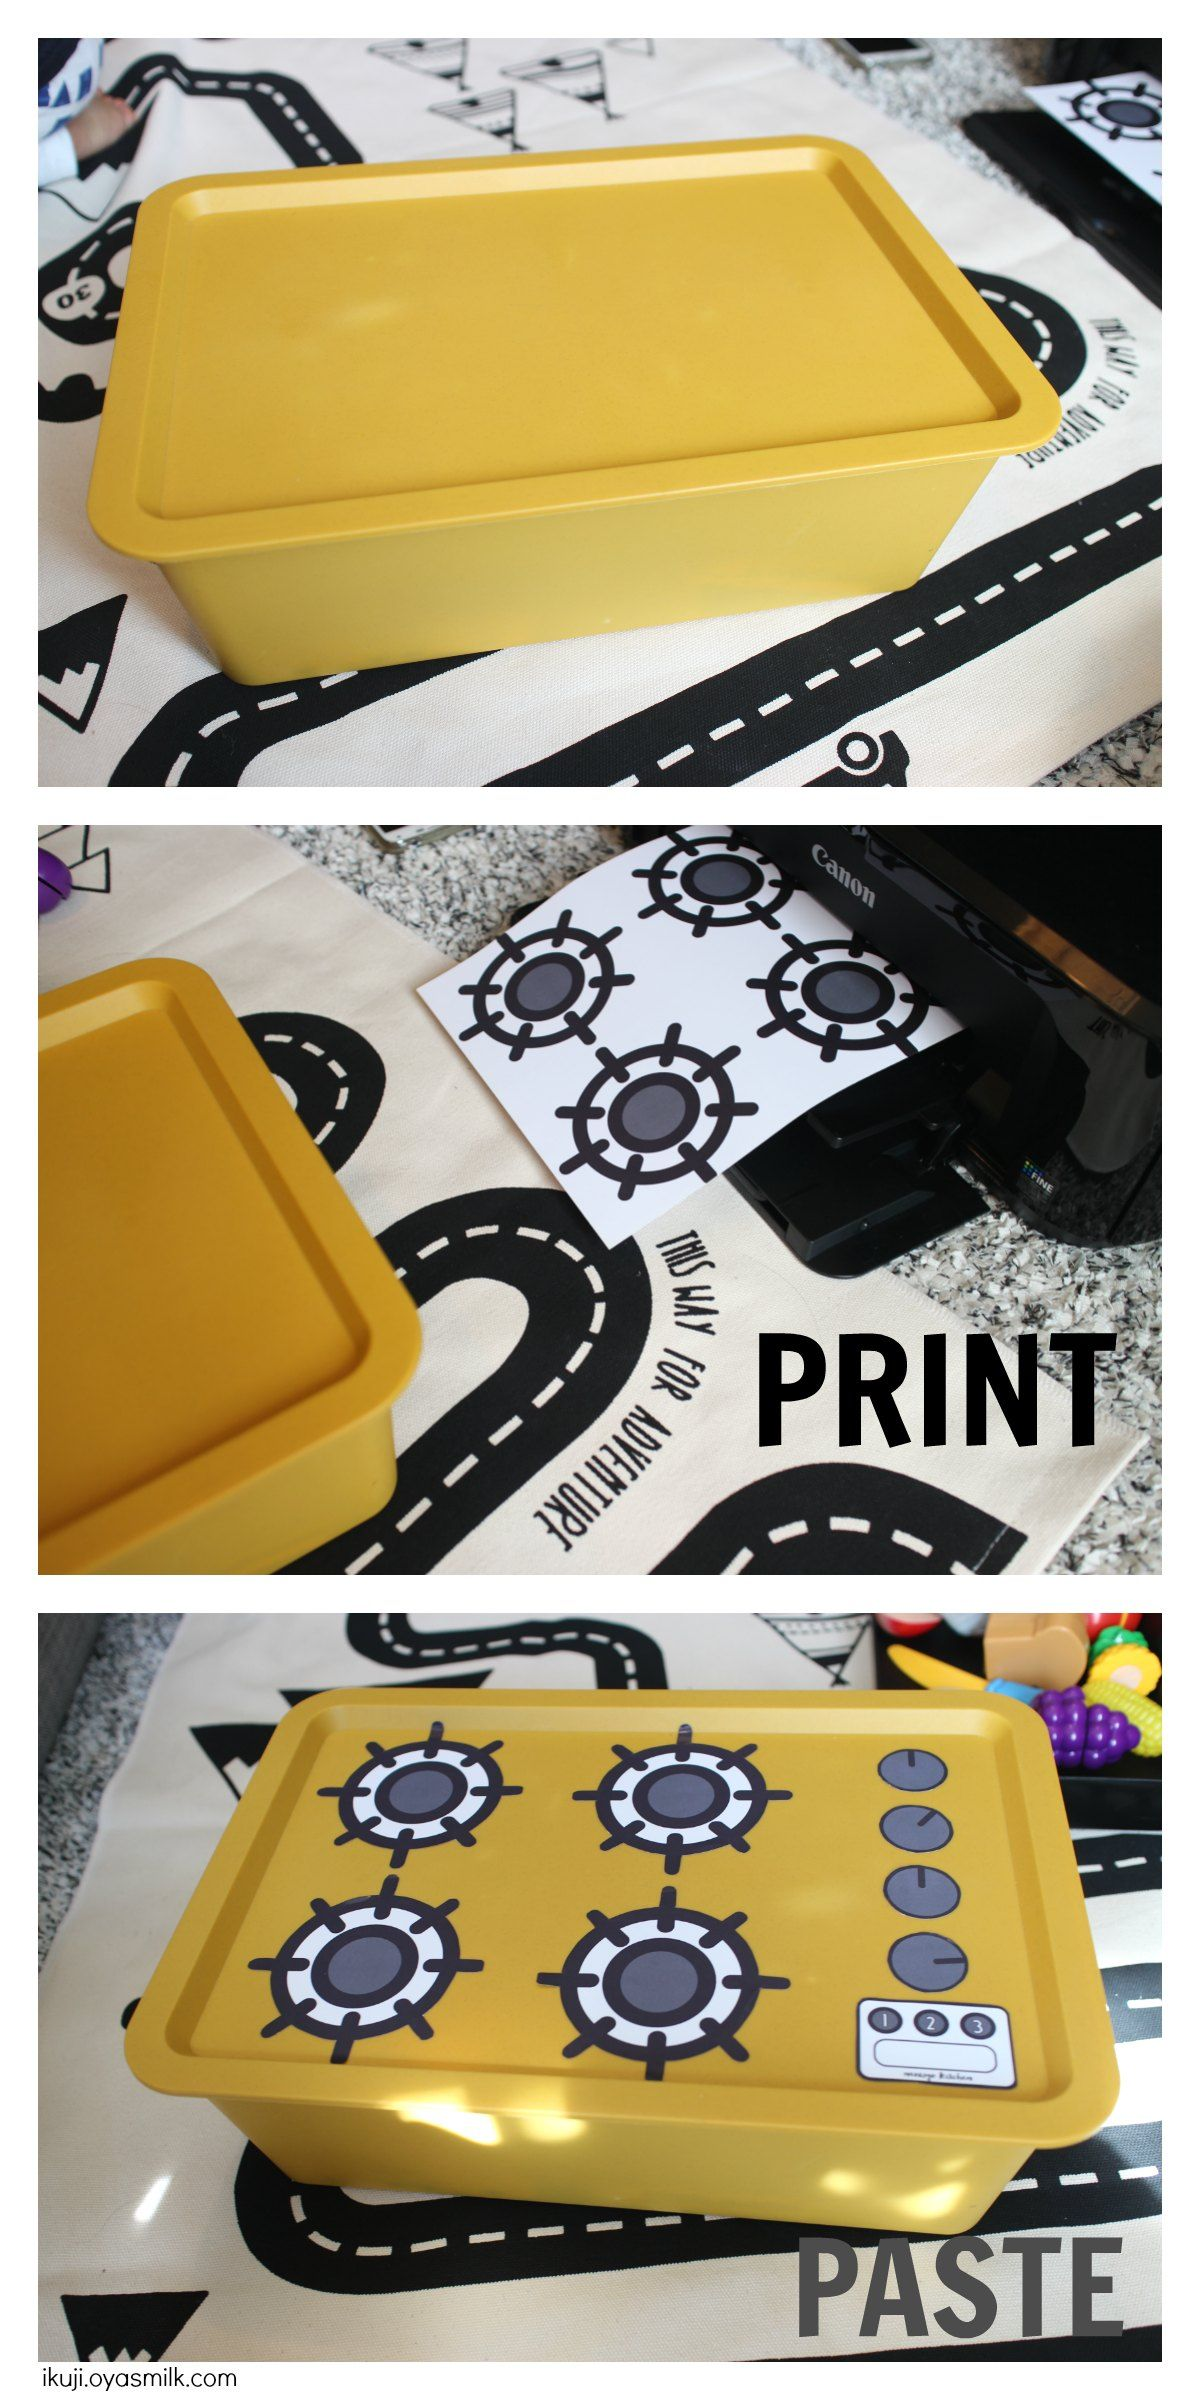 How To Make An Easy Diy Kitchen Stove Free Printable Kitchen Stove Just Print And Paste On A Box To Create A Little Diy Toy K 子供向けクラフト キッズアクティビティー 手作りおもちゃ 保育園